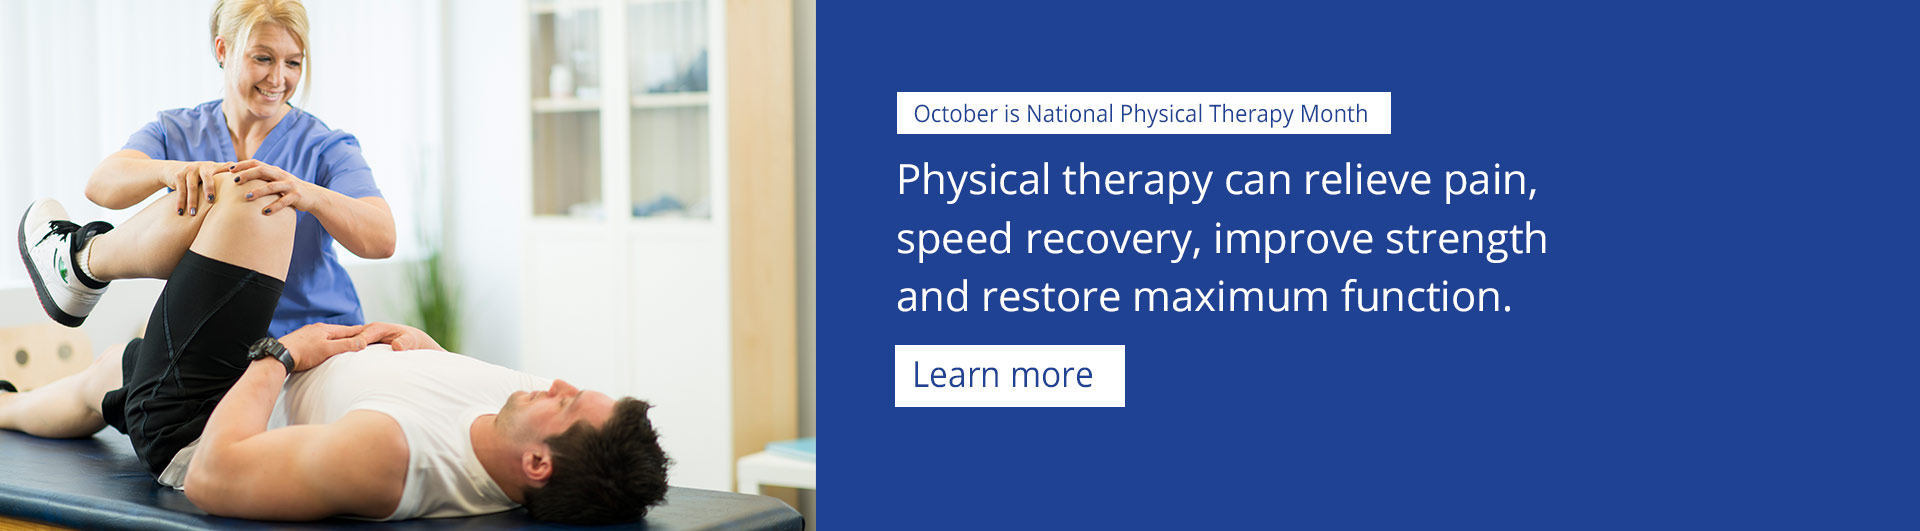 Physical Therapy Awareness Month